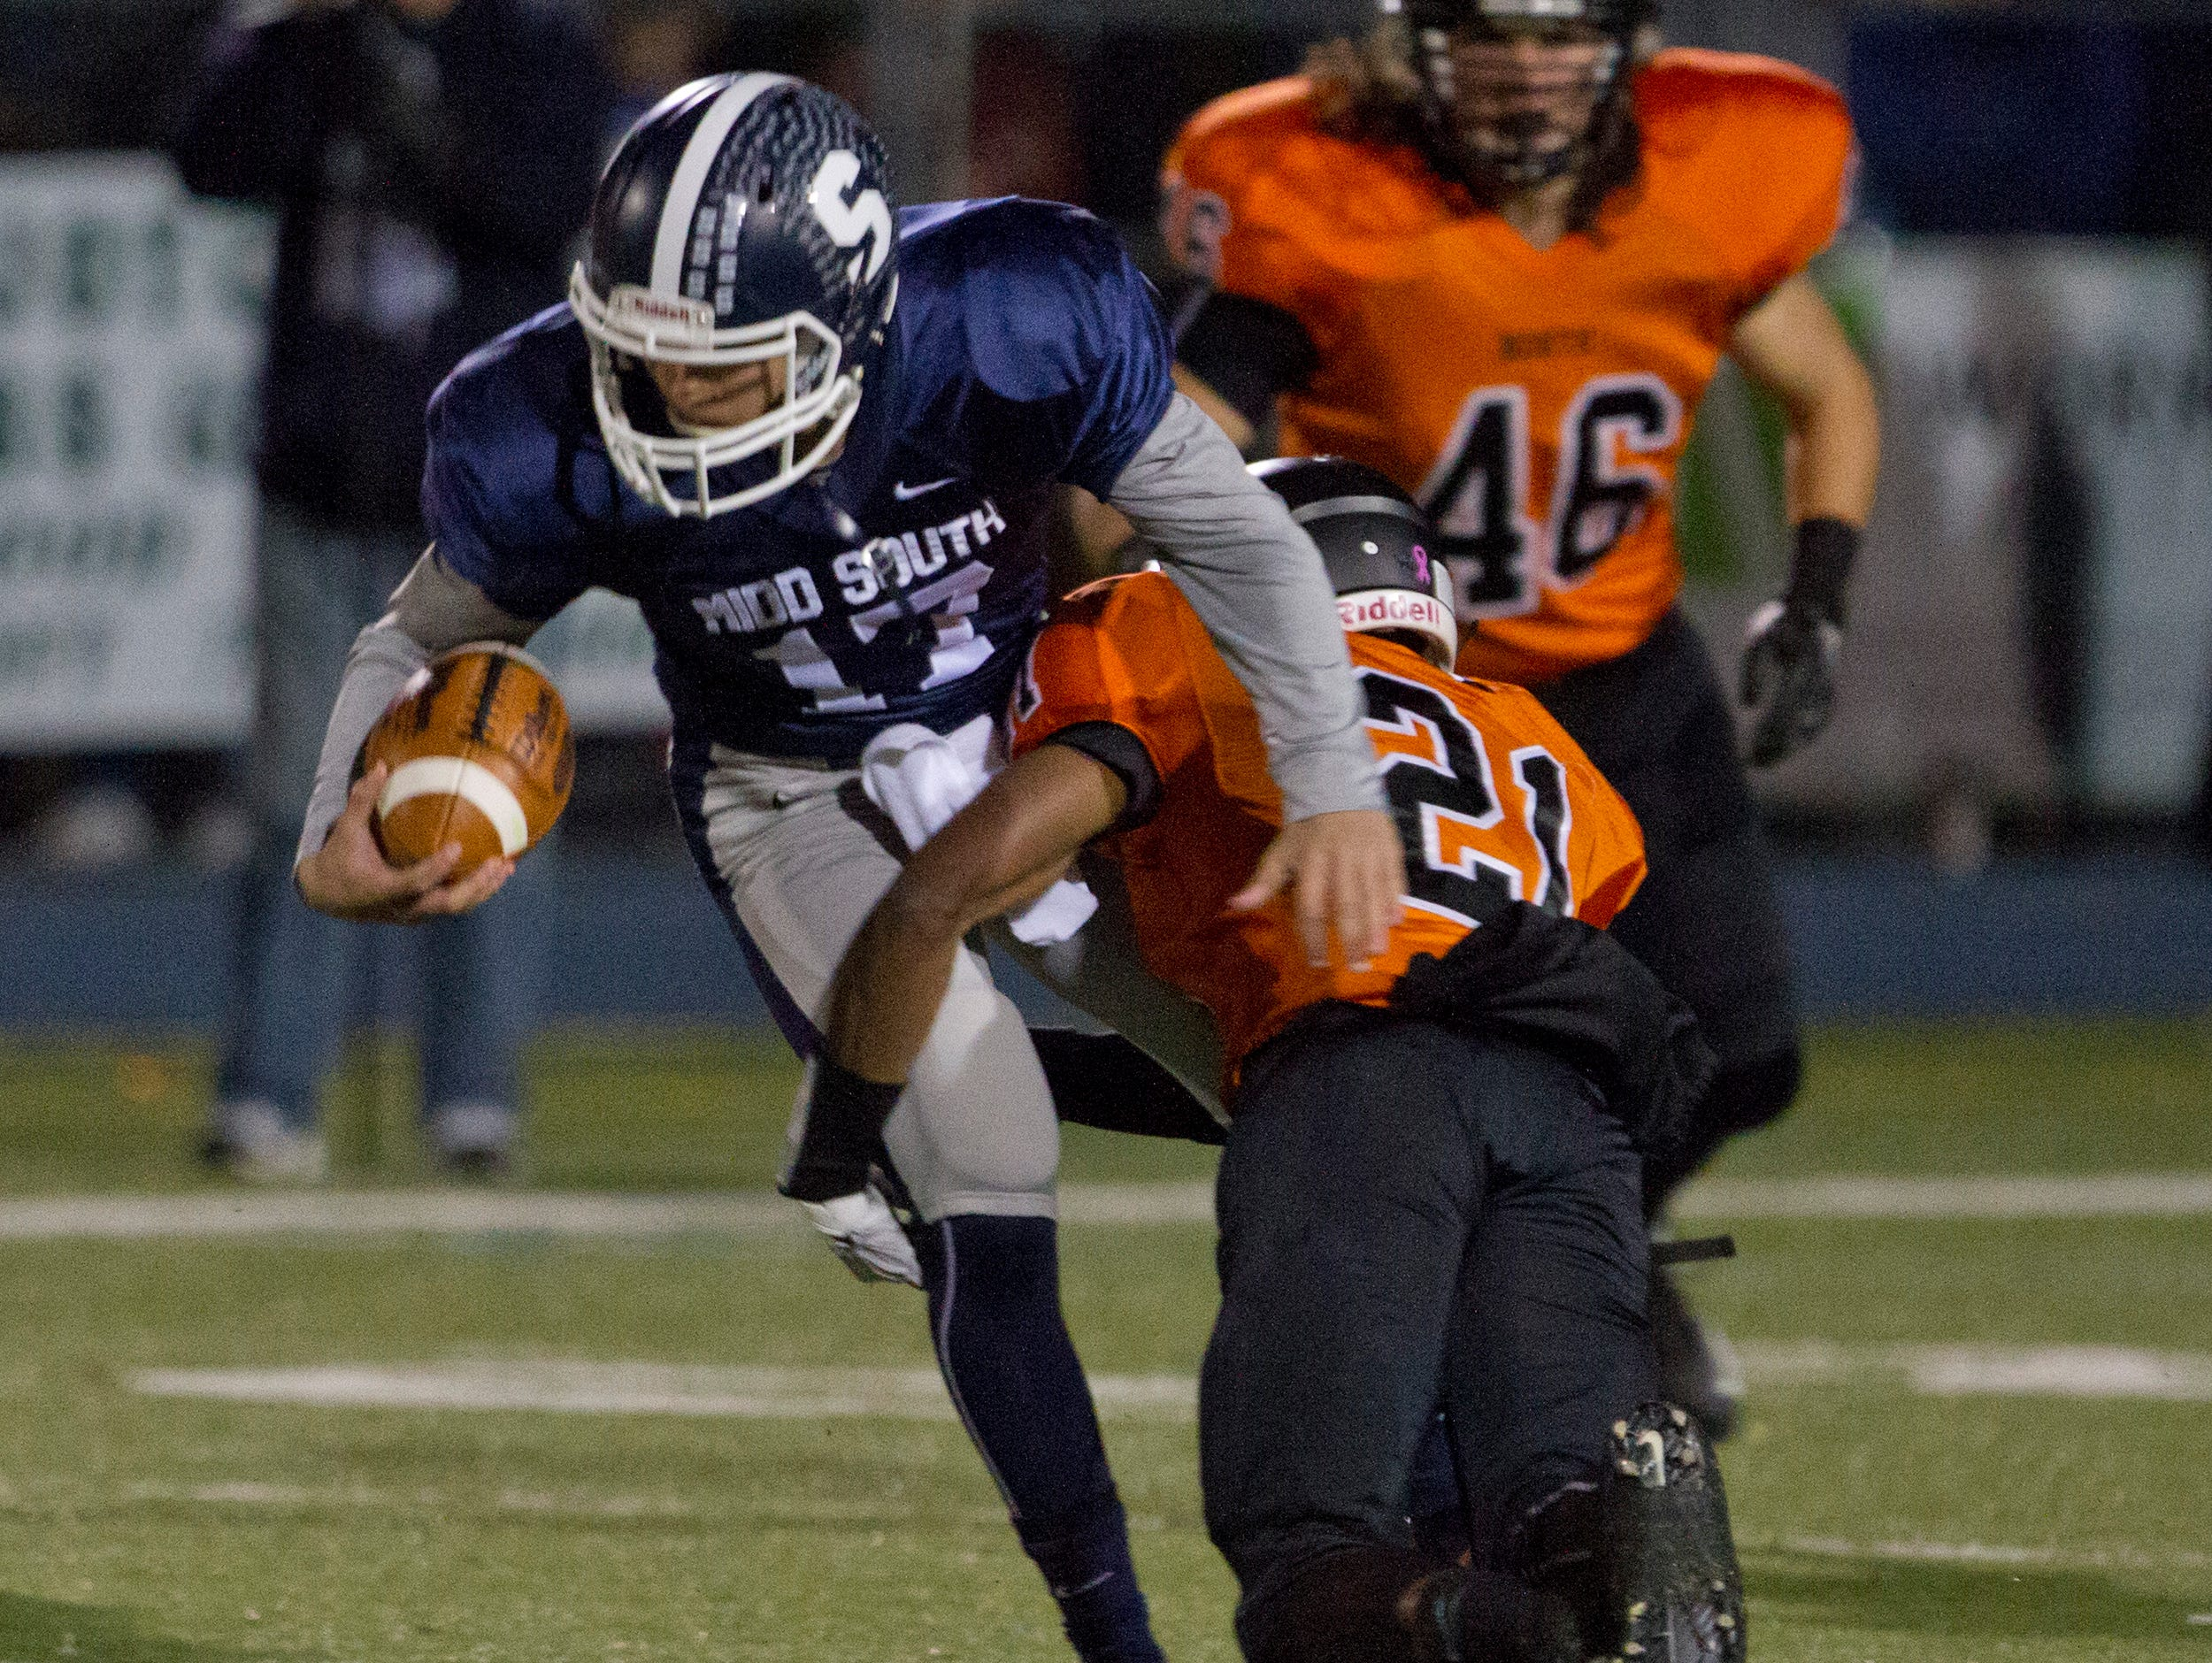 Middletown South's Matt Mosquera gains some yardage before being brought down by Middletown North's Dwight Wilkerson during first half action. Middletown North vs Middletown South in NJSIAA North II Group IV semifinal football in Middletown, NJ on November 20, 2015